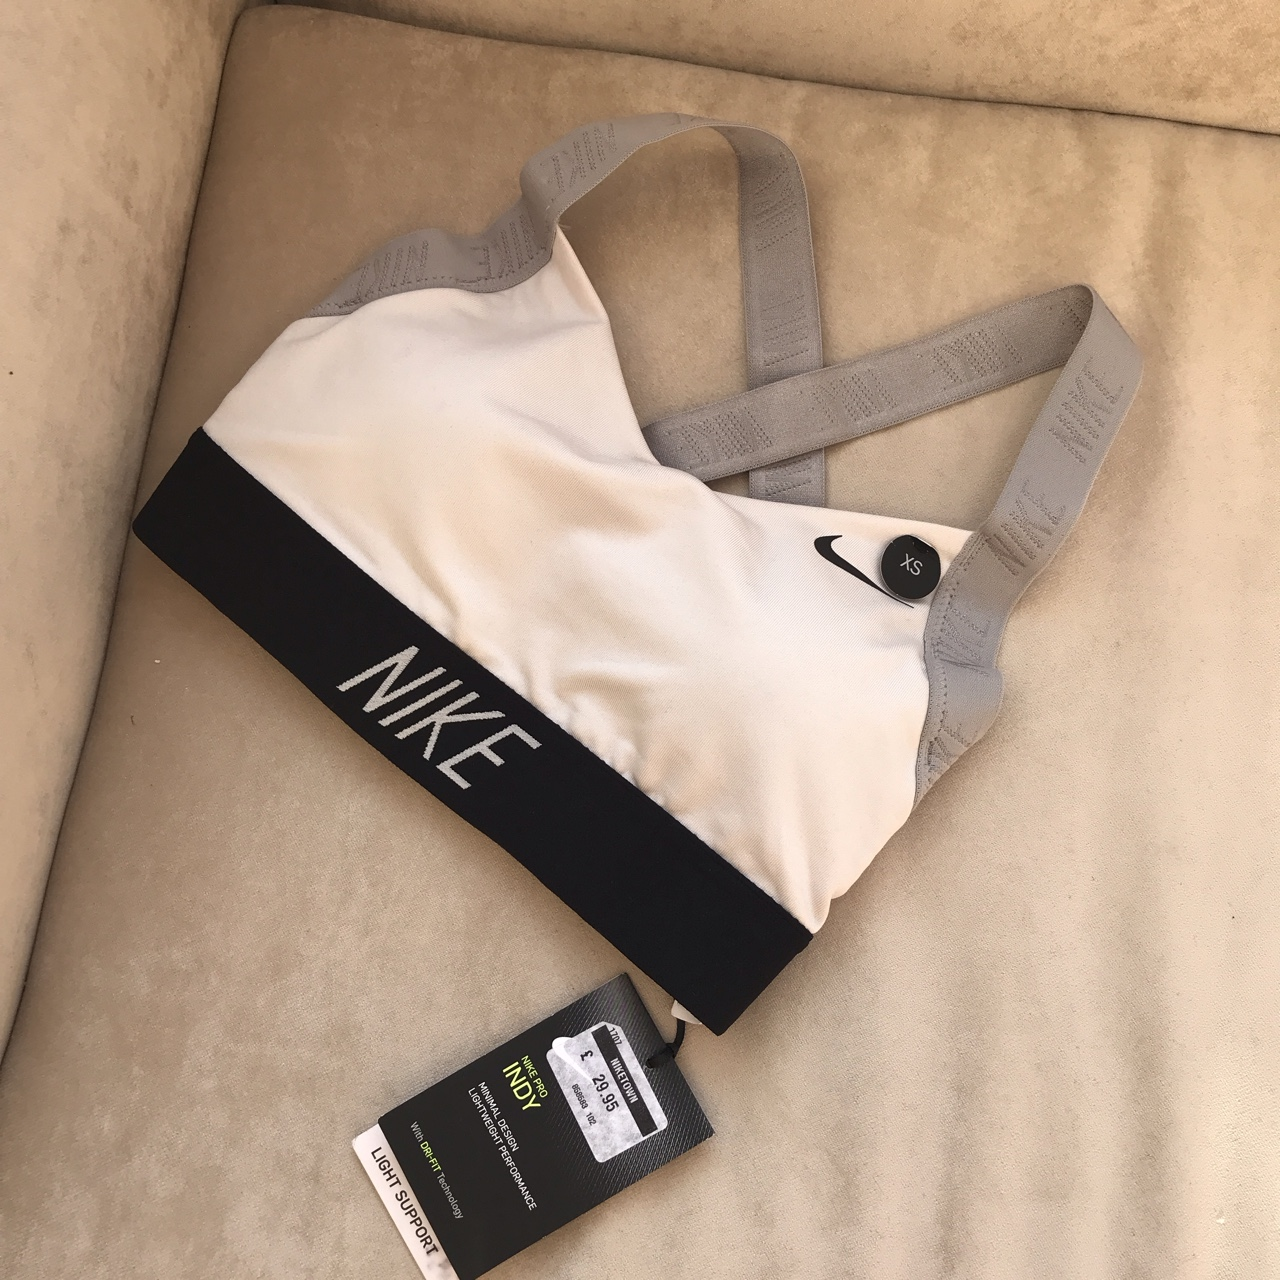 hada Dentro Inmoralidad  Nike Training Pro Indy Logo Back Bra White, grey... - Depop